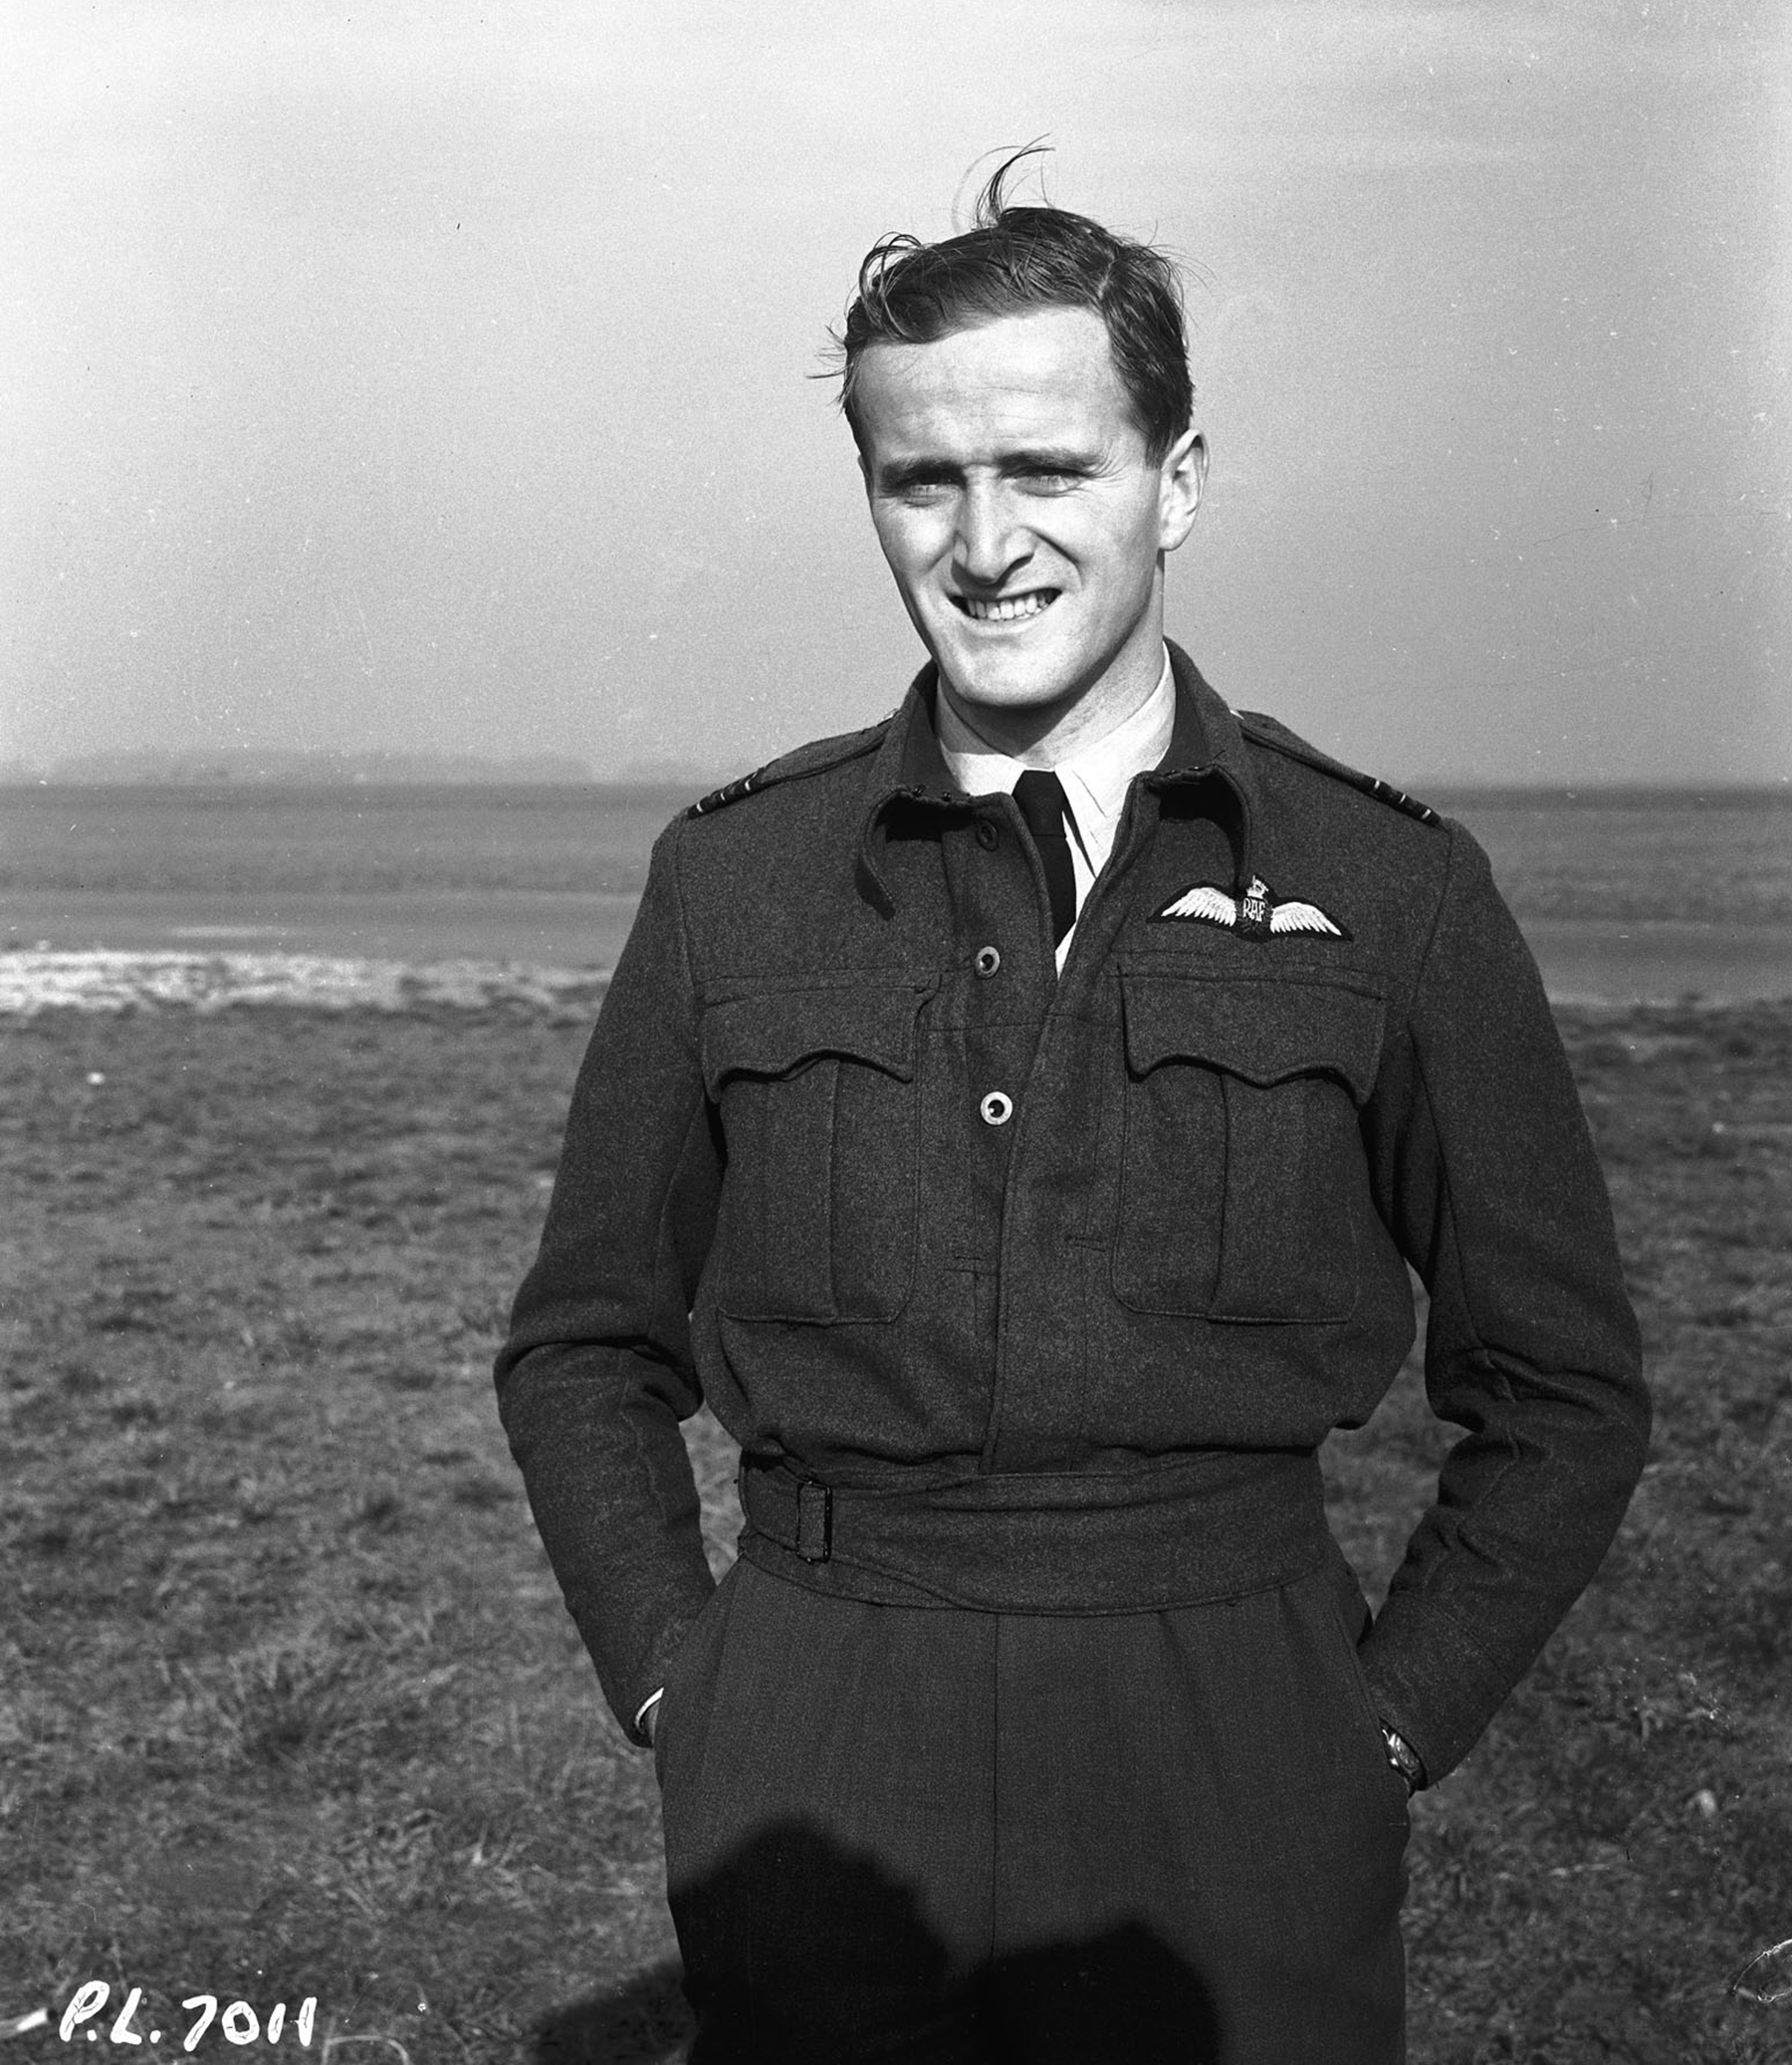 Squadron Leader Paul Brooks Pitcher, from Montreal, Quebec, a Royal Canadian Air Force pilot and veteran of the Battle of Britain, is photographed on November 5, 1941, on a break from commanding a Canadian fighter squadron in England.